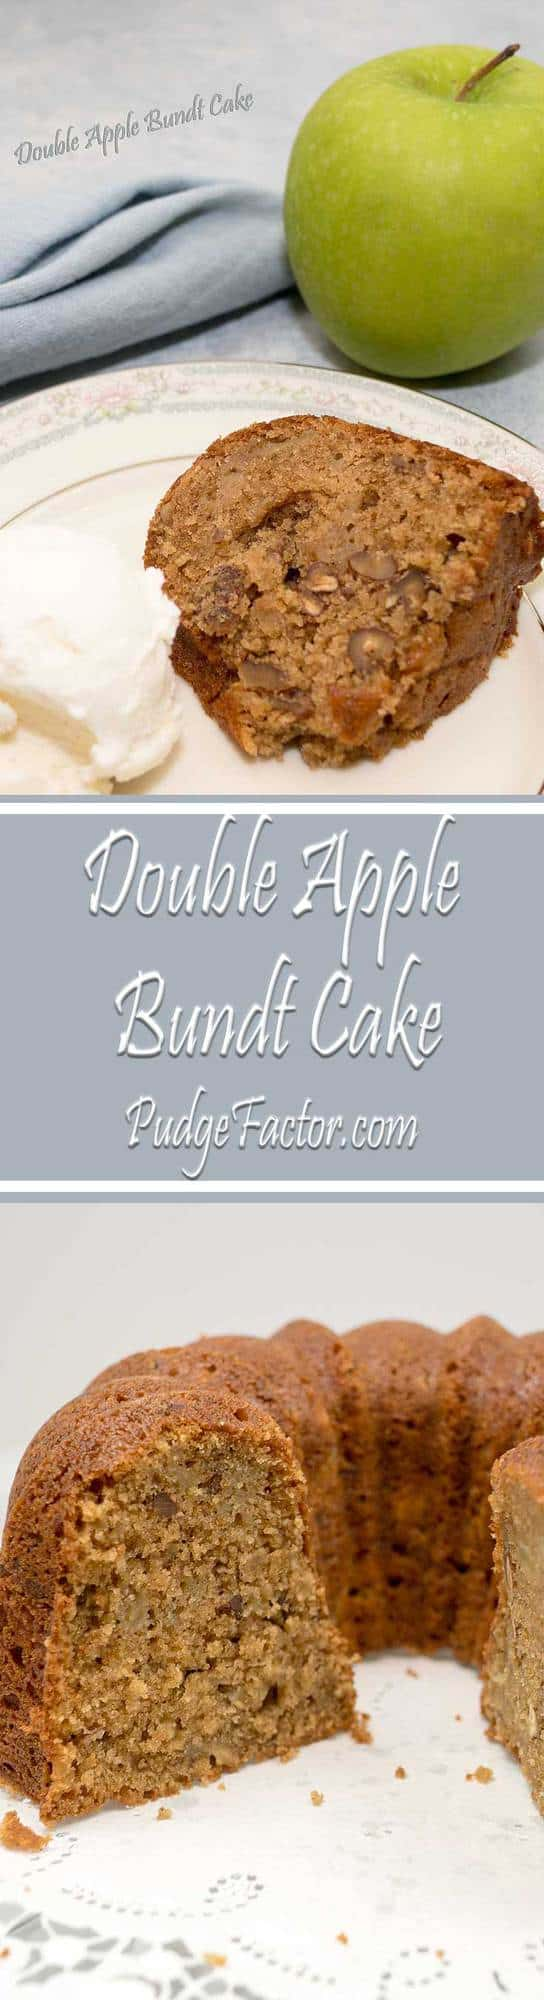 This amazing Double Apple Bundt Cake is super moist, with just the right amount of spices. It's filled with fresh apples, apple butter and toasted pecans, and baked to perfection.